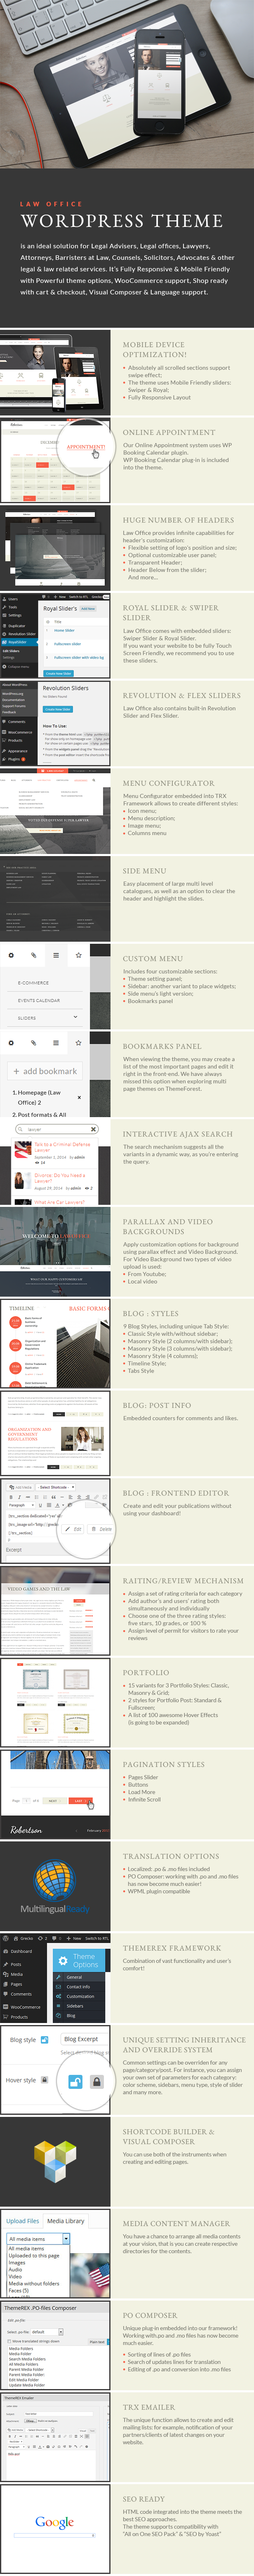 Law Office | A Lawyers Attorneys Legal Office WordPress Theme + RTL - 1